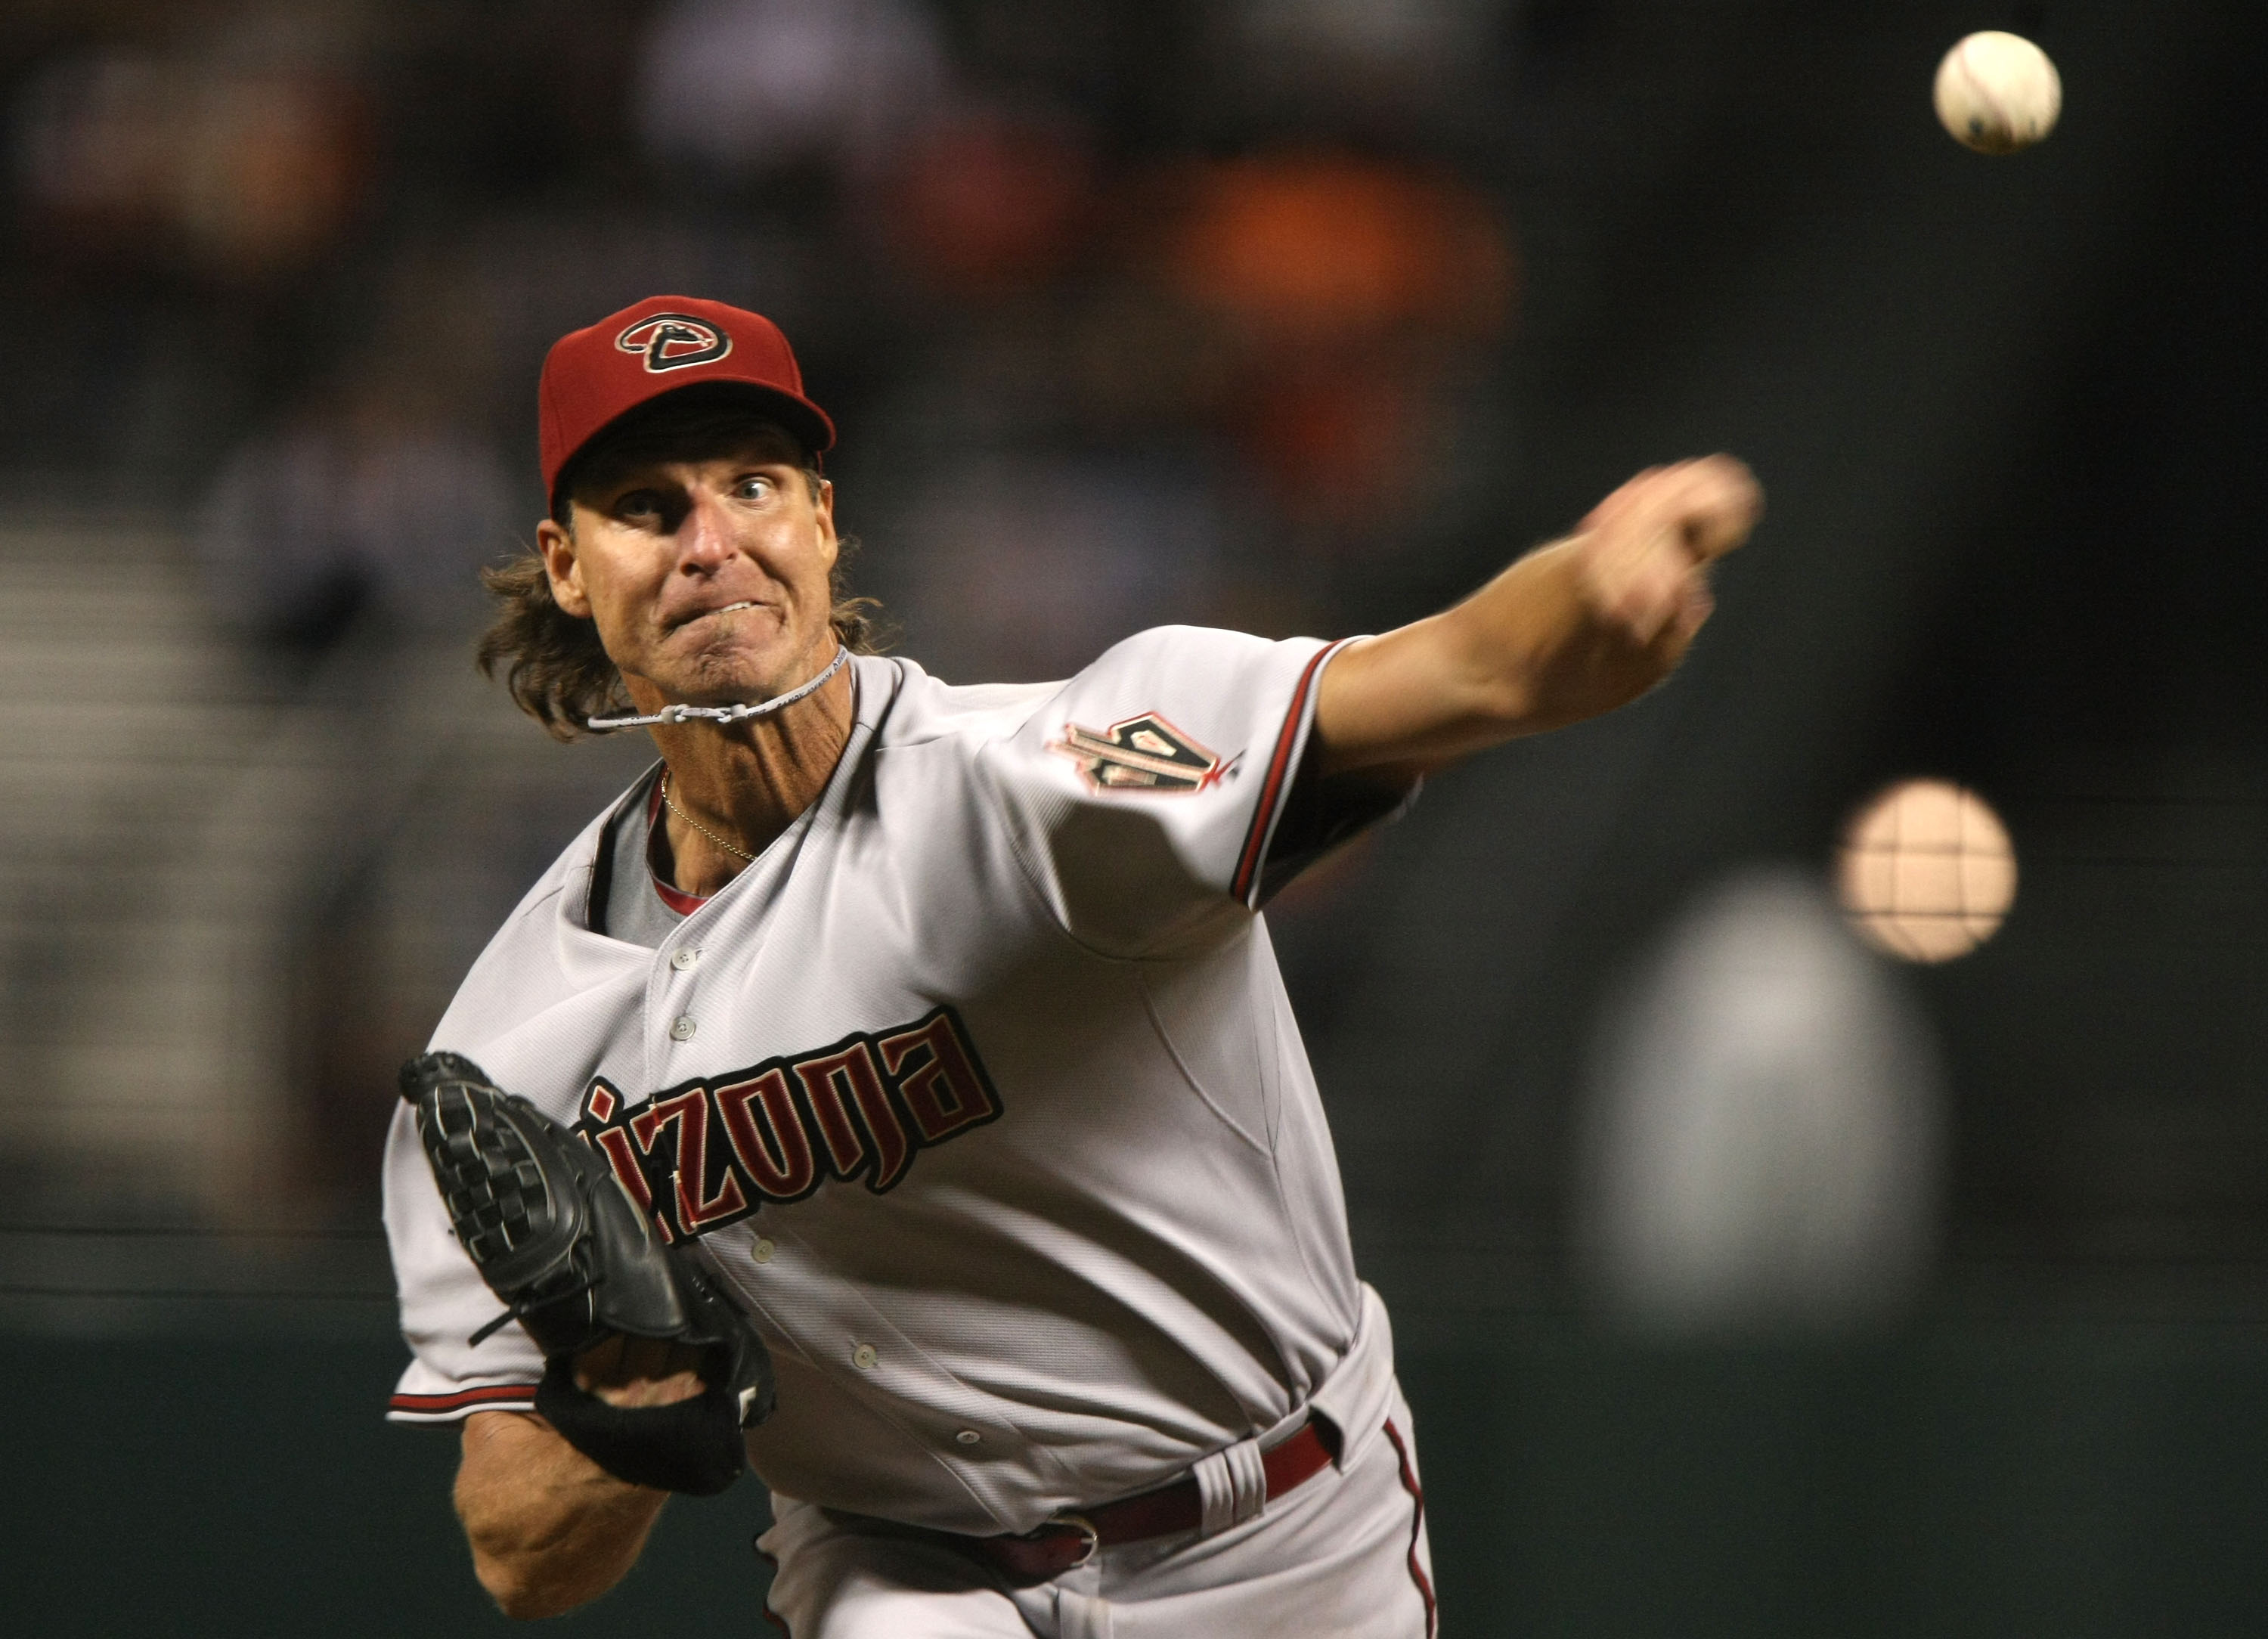 SAN FRANCISCO - APRIL 14:  Randy Johnson #51 of the Arizona Diamondbacks pitches against the San Francisco Giants during a Major League Baseball game on March 14, 2008 at AT&T Park in San Francisco, California.  (Photo by Jed Jacobsohn/Getty Images)